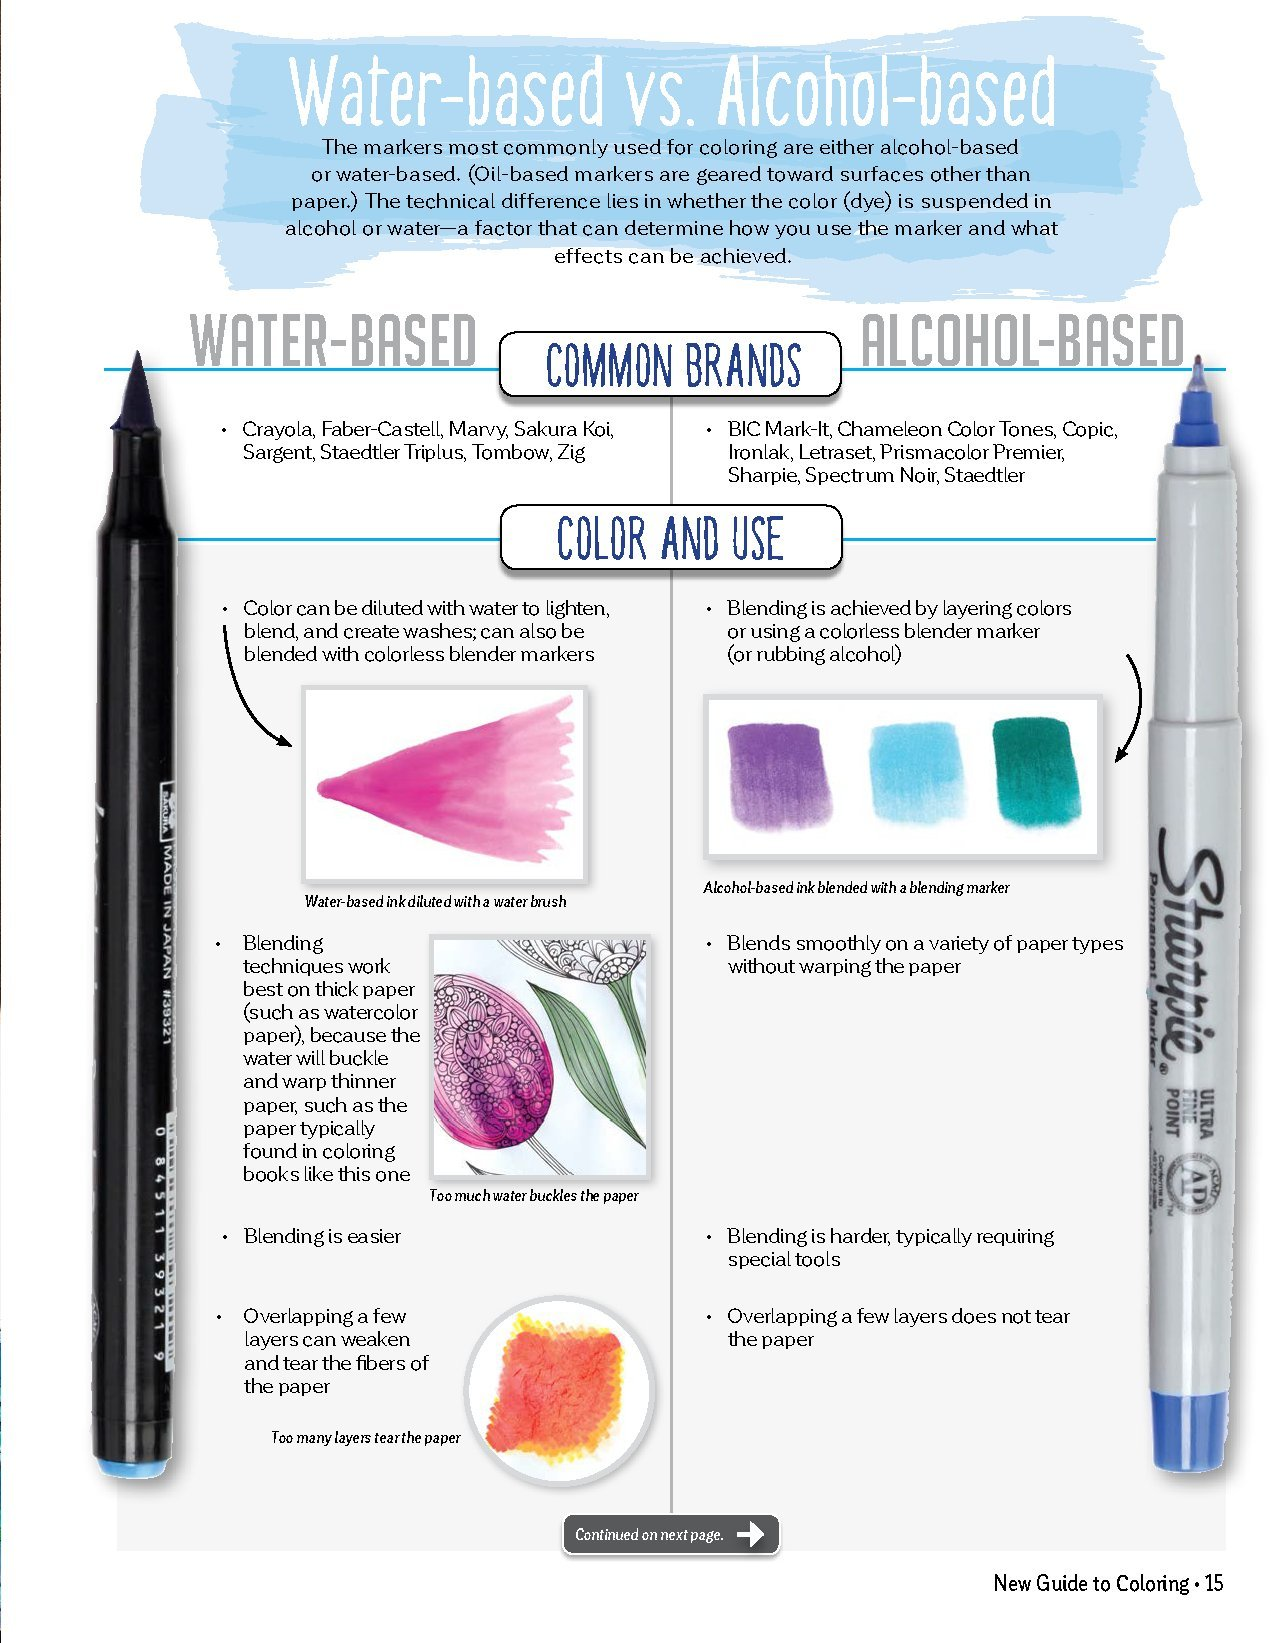 Amazon New Guide To Coloring For Crafts Adult Books And Other Coloristas Tips Tricks Techniques All Skill Levels